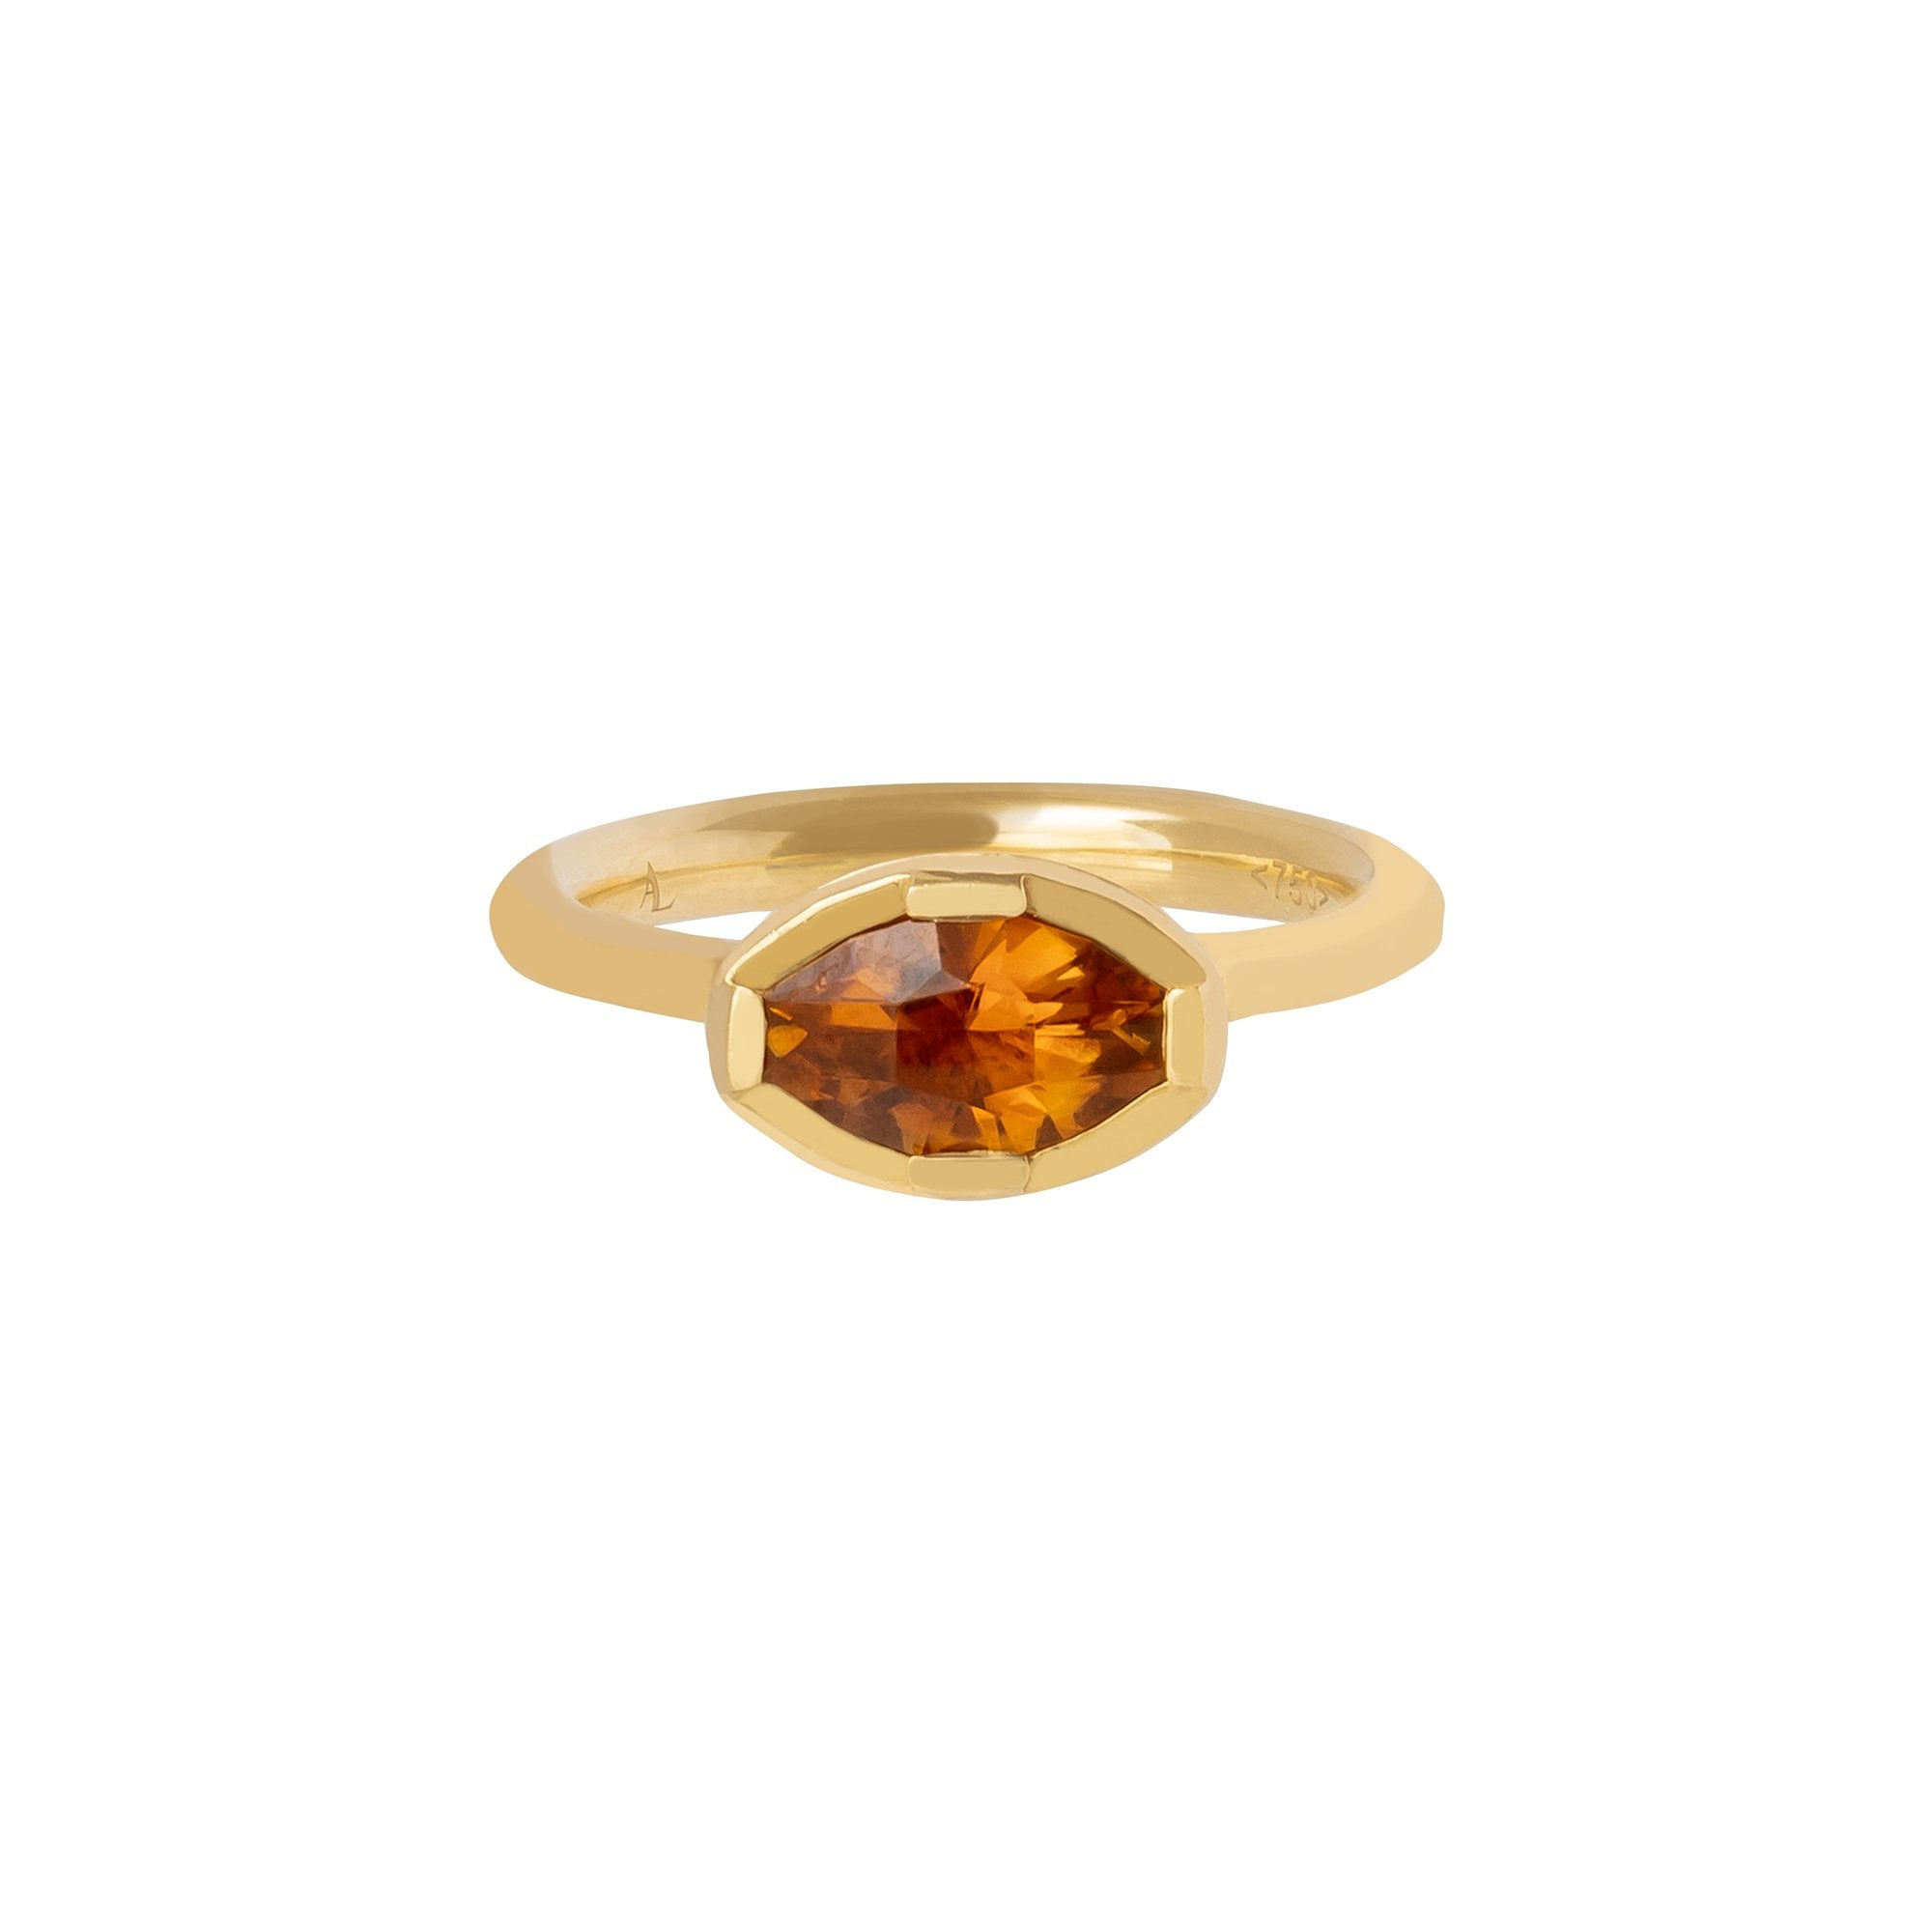 Orange Tourmaline Genesis Gemstone Ring - ANDY LIF Jewelry - Rings | Broken English Jewelry